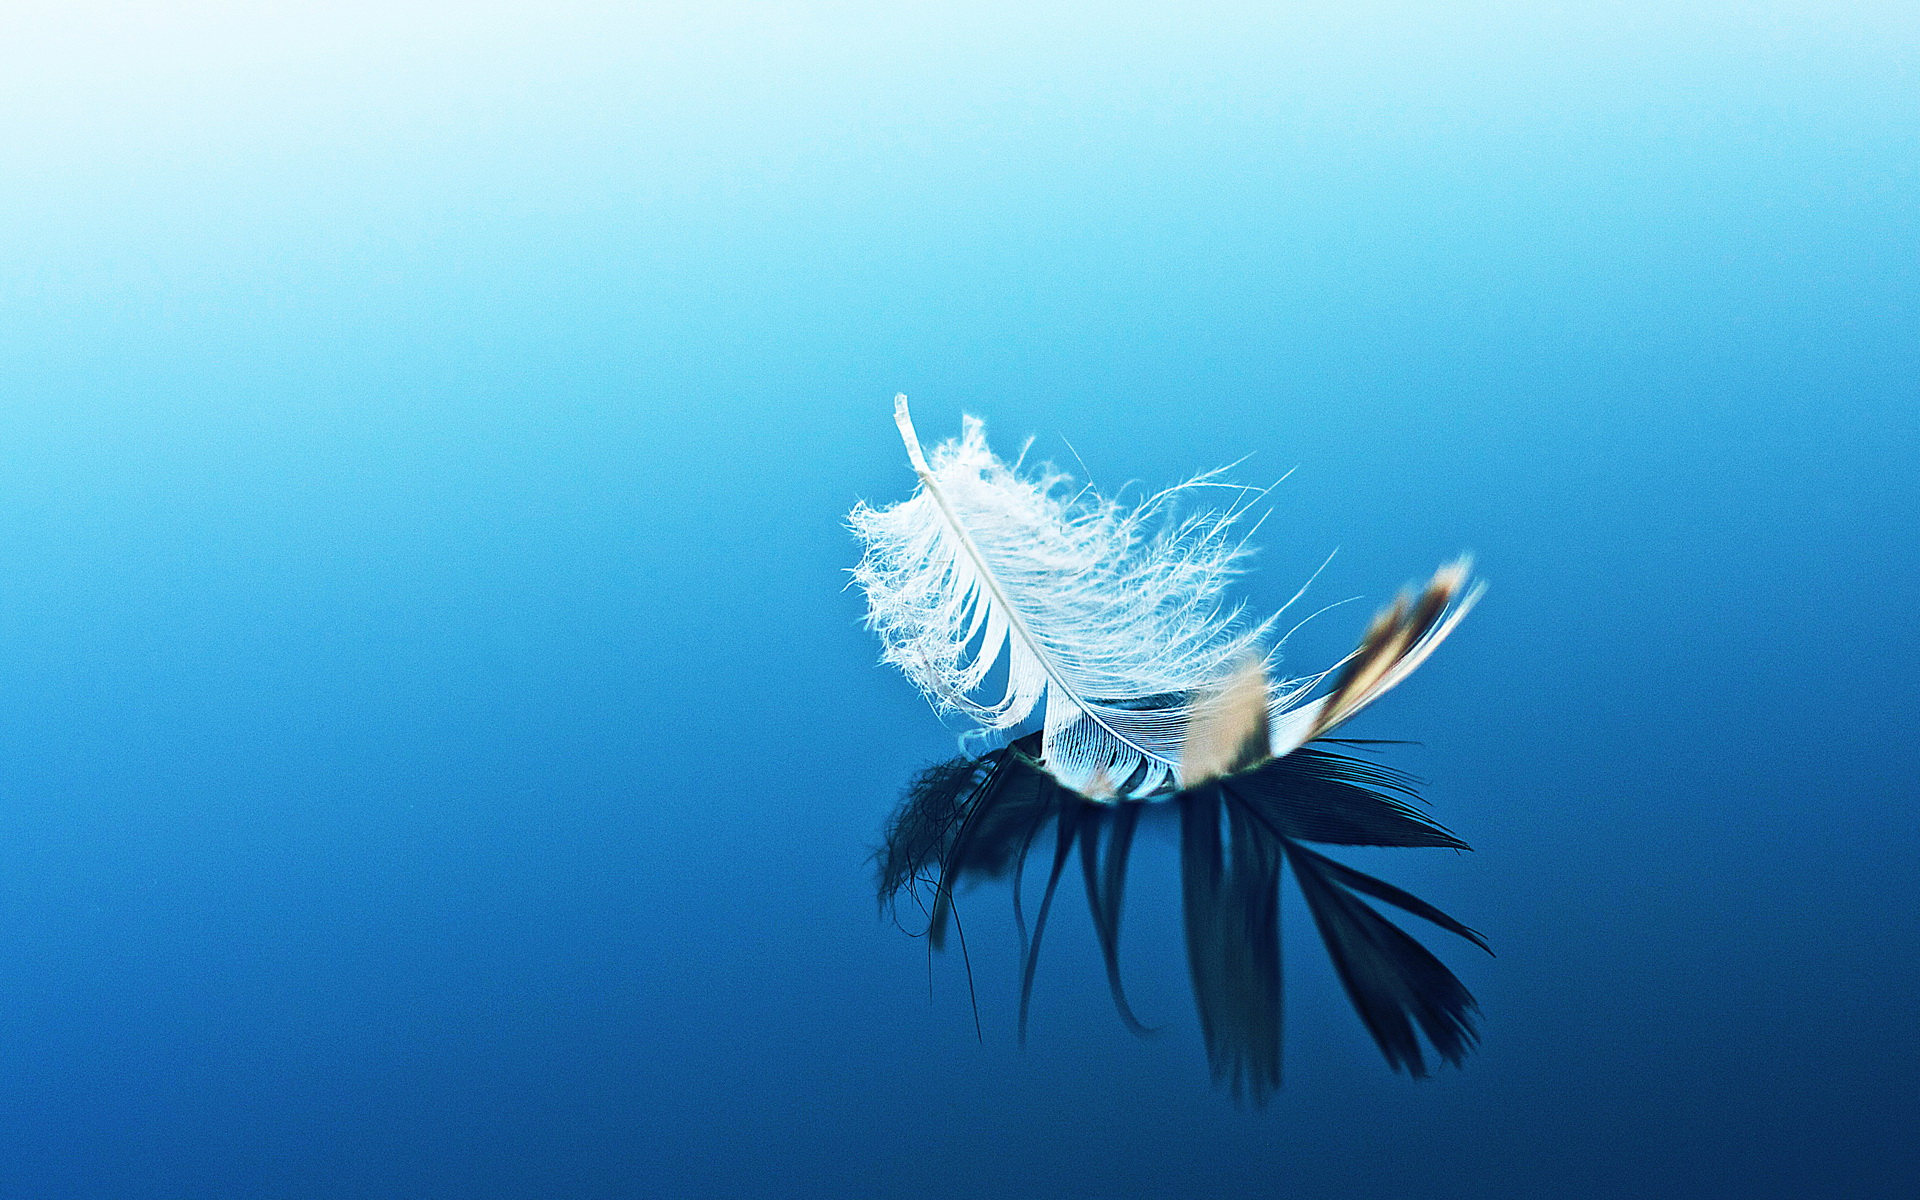 Artistic - Feather Wallpaper